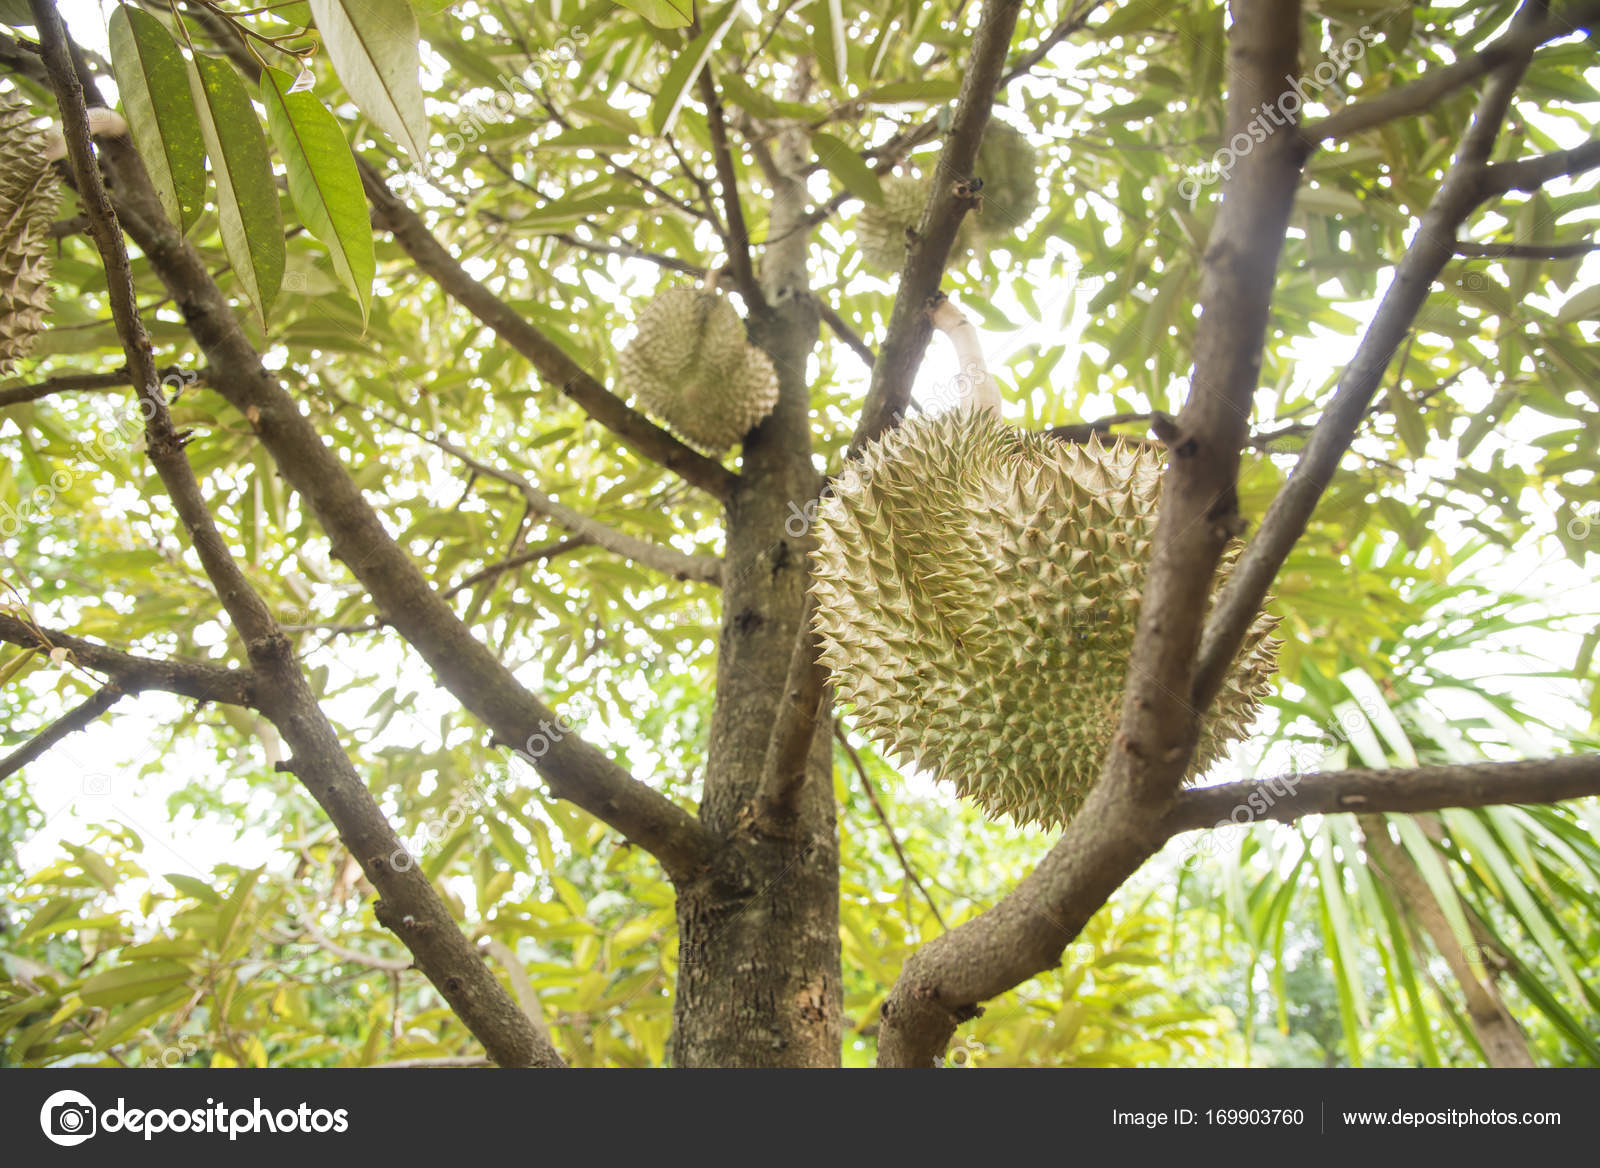 Pictures: durian tree | Durian tree, King of fruits in the